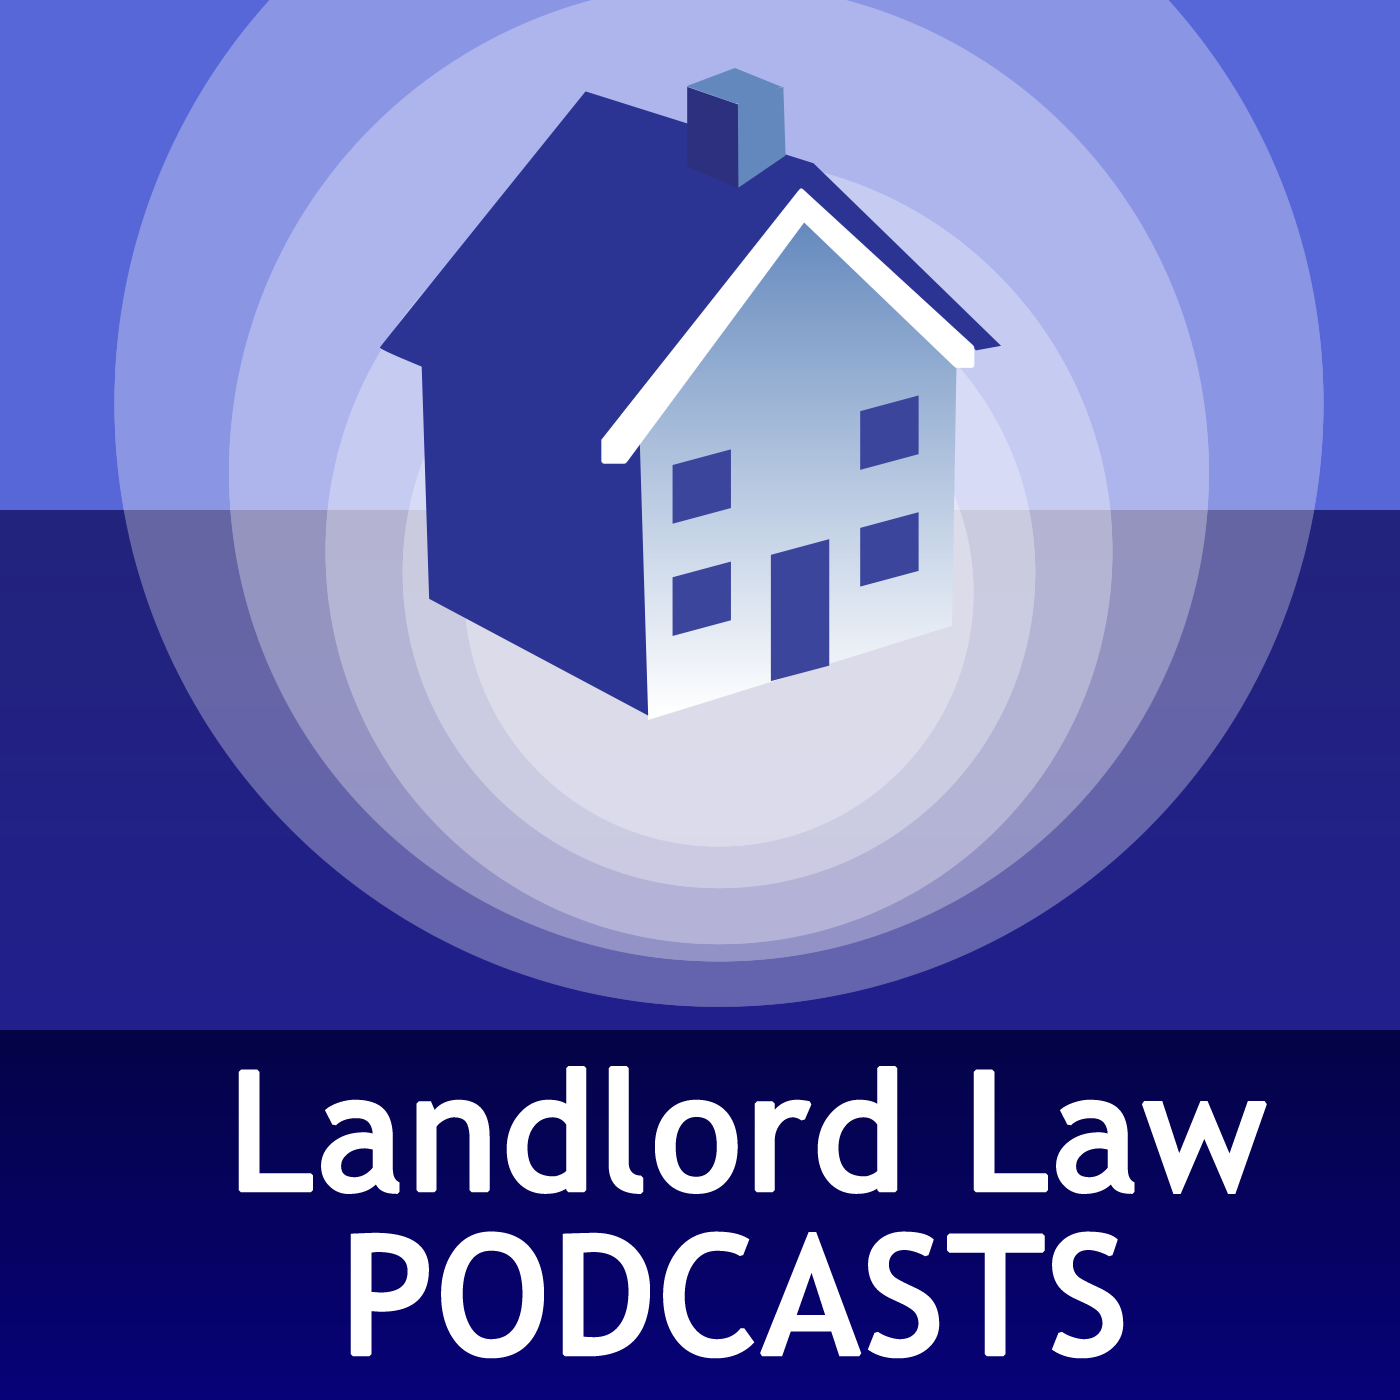 The Landlord Law Podcast By Tessa Shepperson On Apple Podcasts